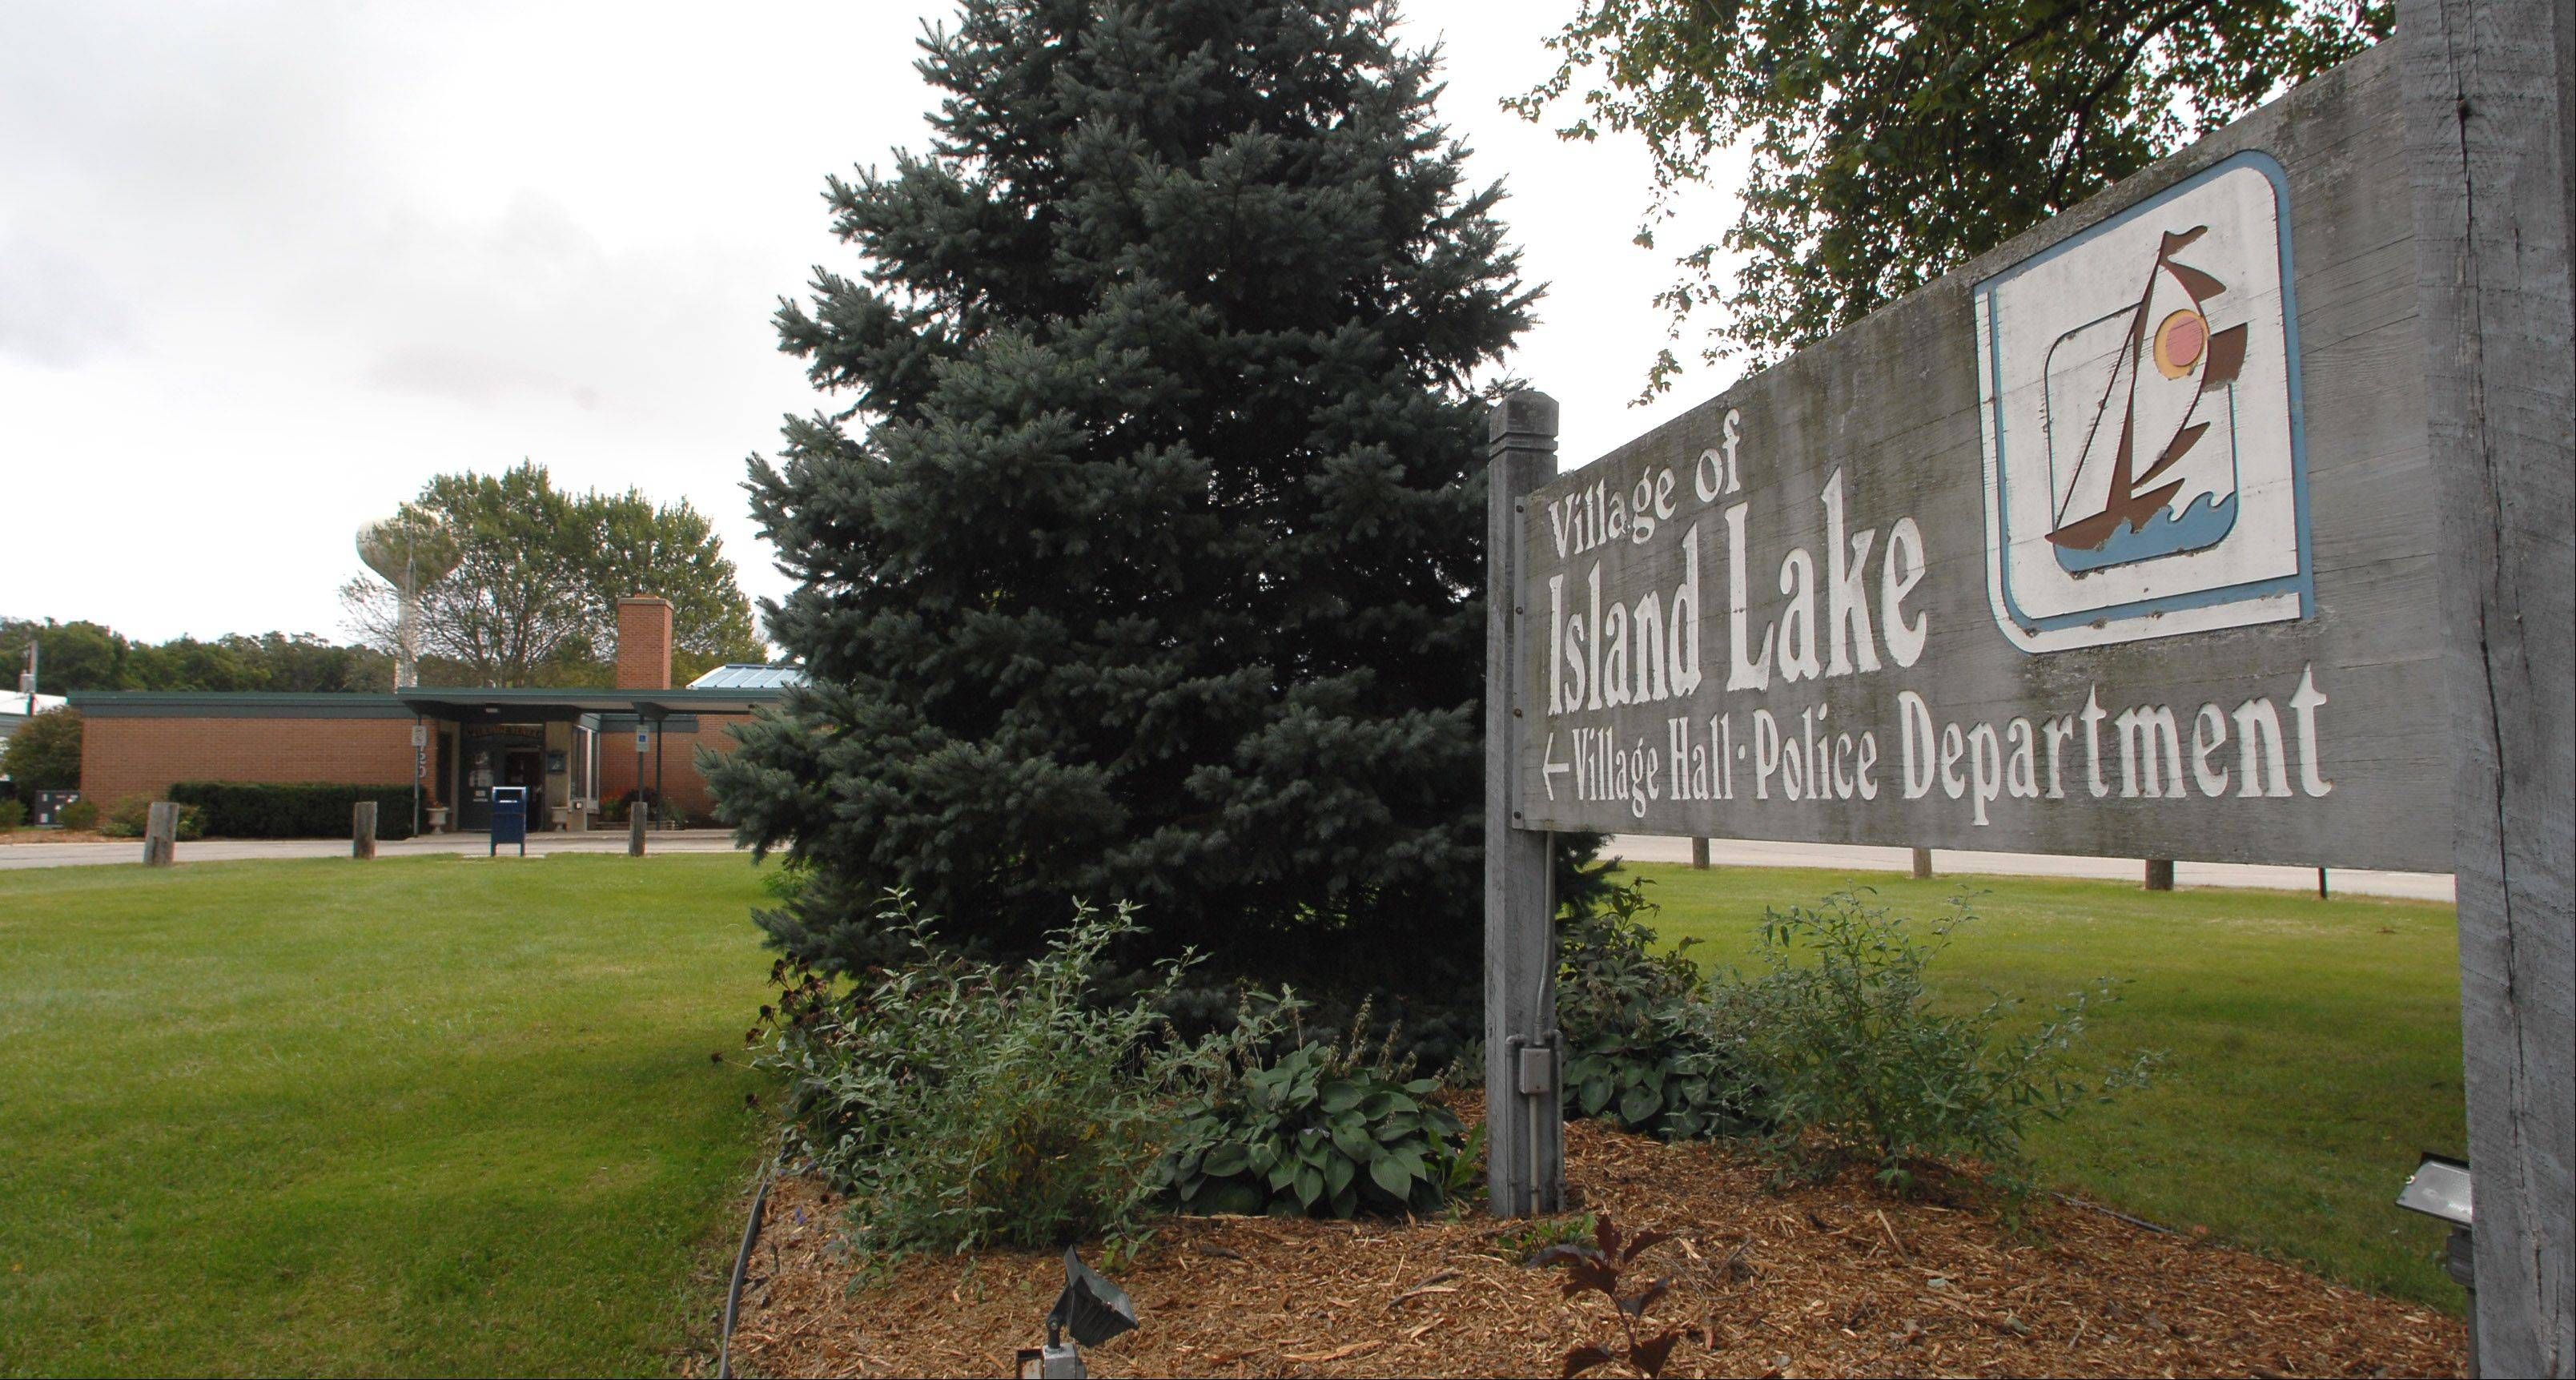 Island Lake officials are considering relocating village hall and the town's police station. They now share a building on Greenleaf Avenue.